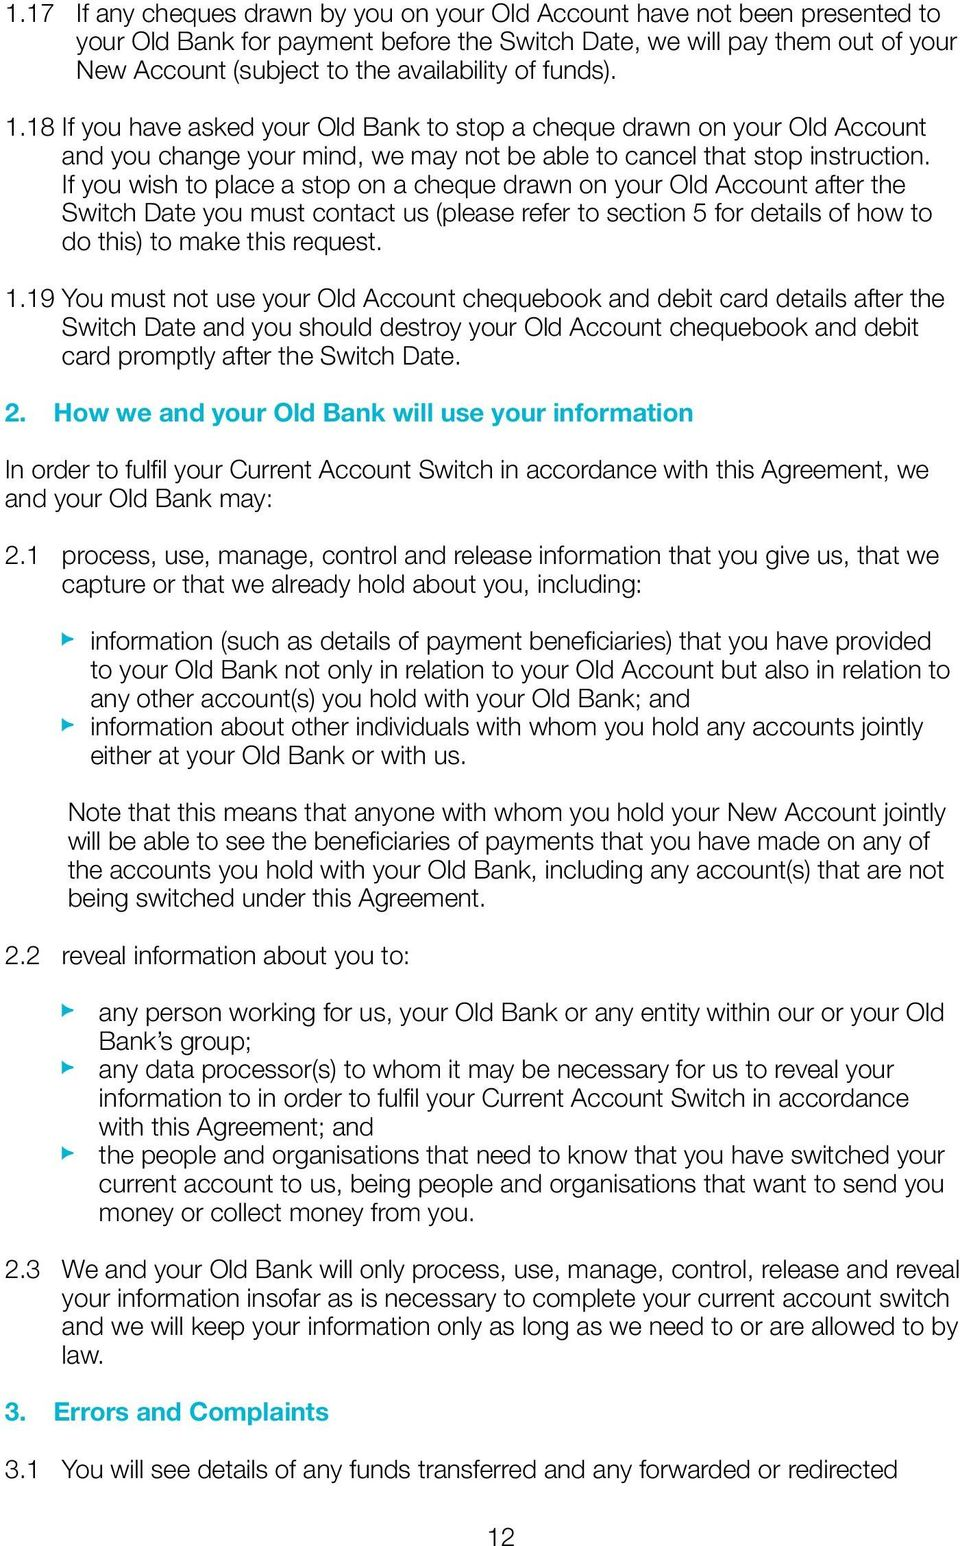 If you wish to place a stop on a cheque drawn on your Old Account after the Switch Date you must contact us (please refer to section 5 for details of how to do this) to make this request. 1.